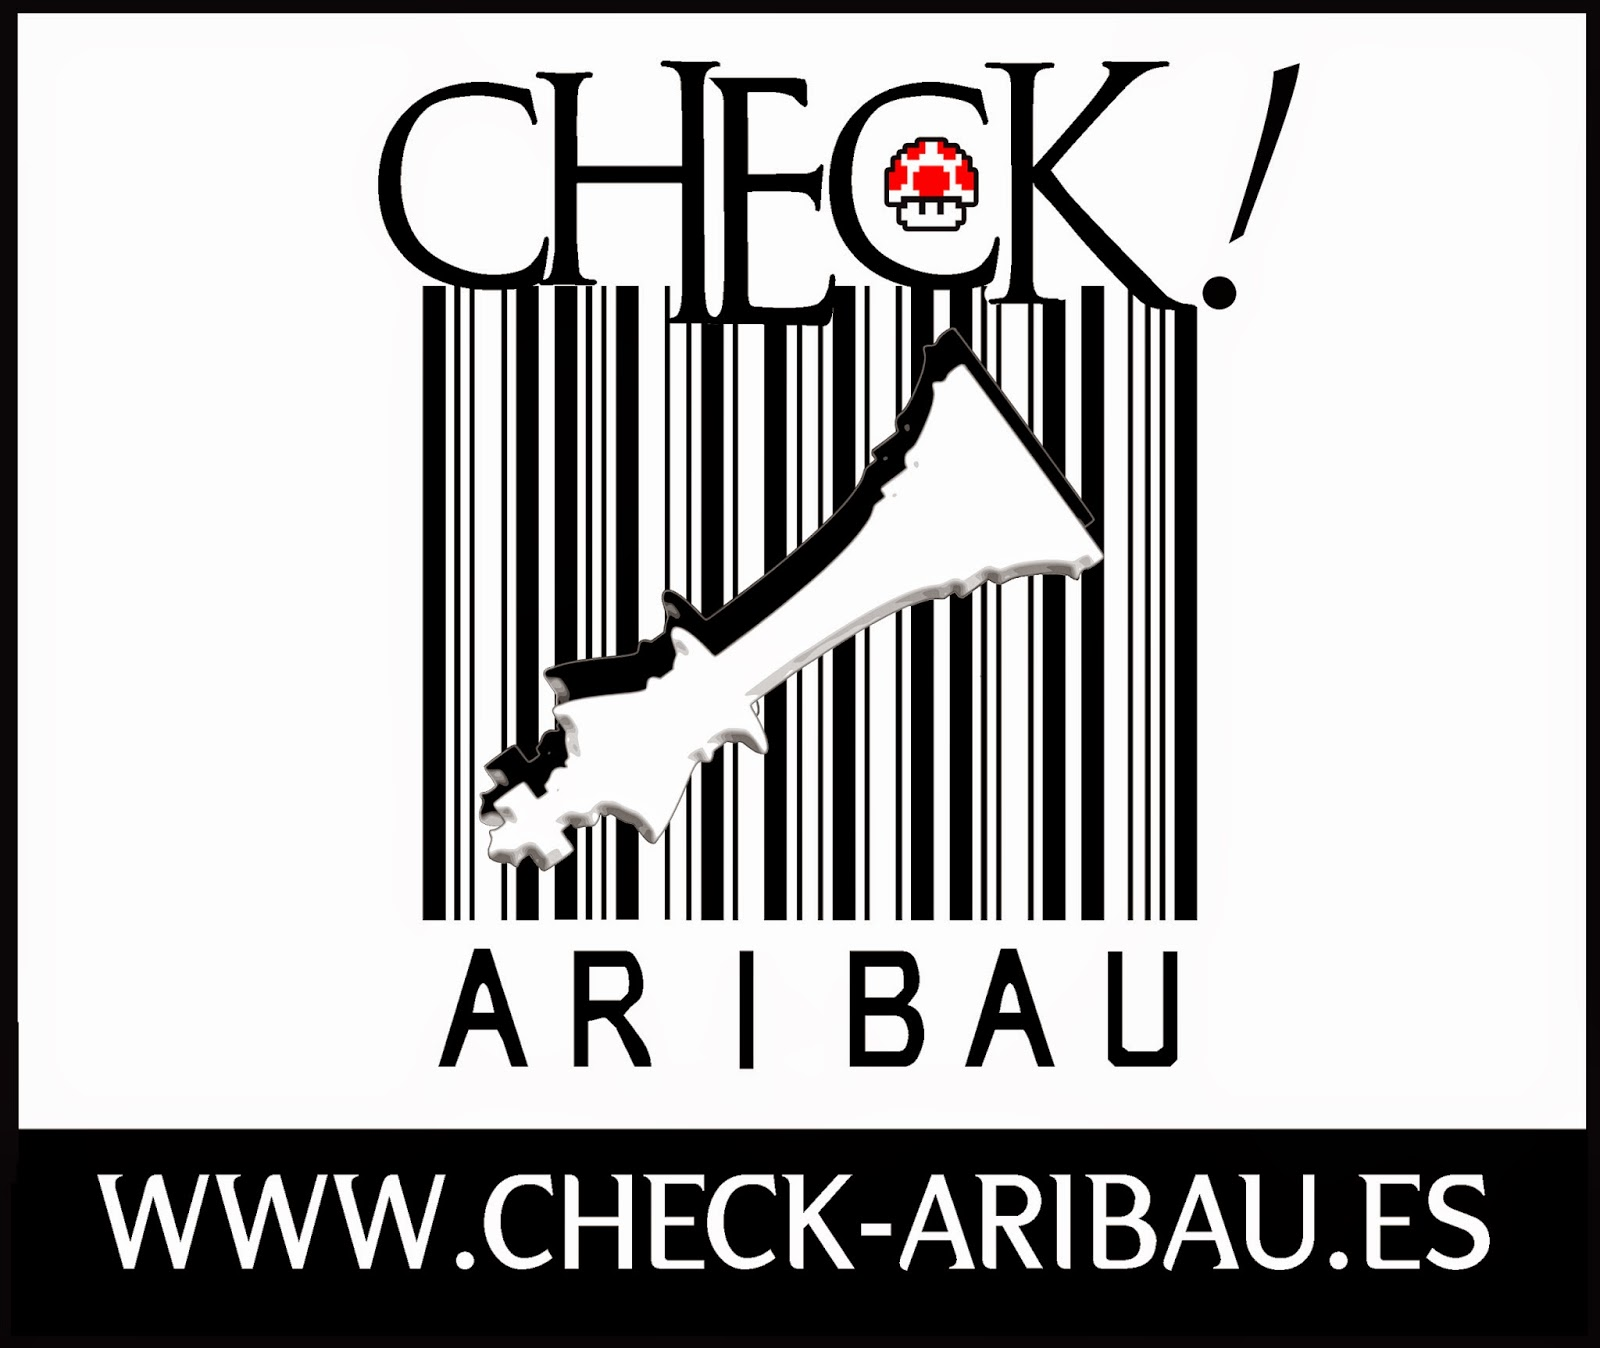 https://www.facebook.com/Check.Aribau